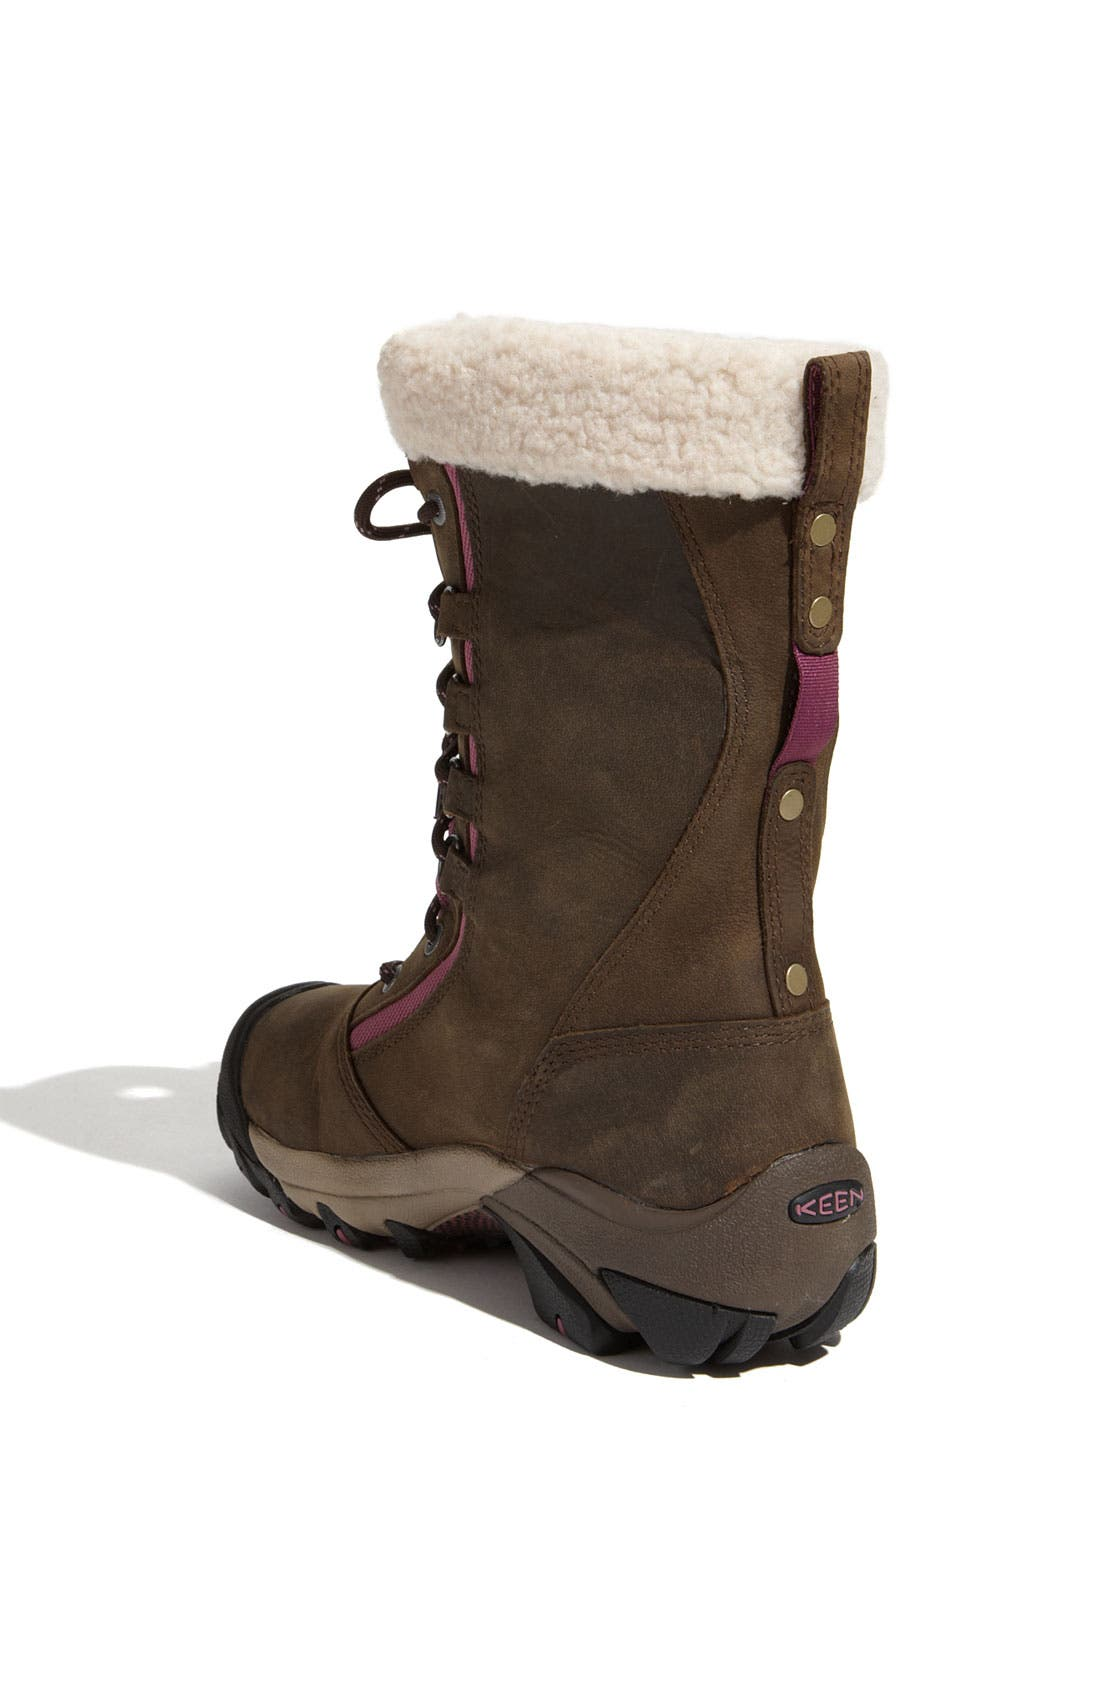 Alternate Image 2  - Keen 'Hoodoo' Waterproof Nubuck Leather Boot